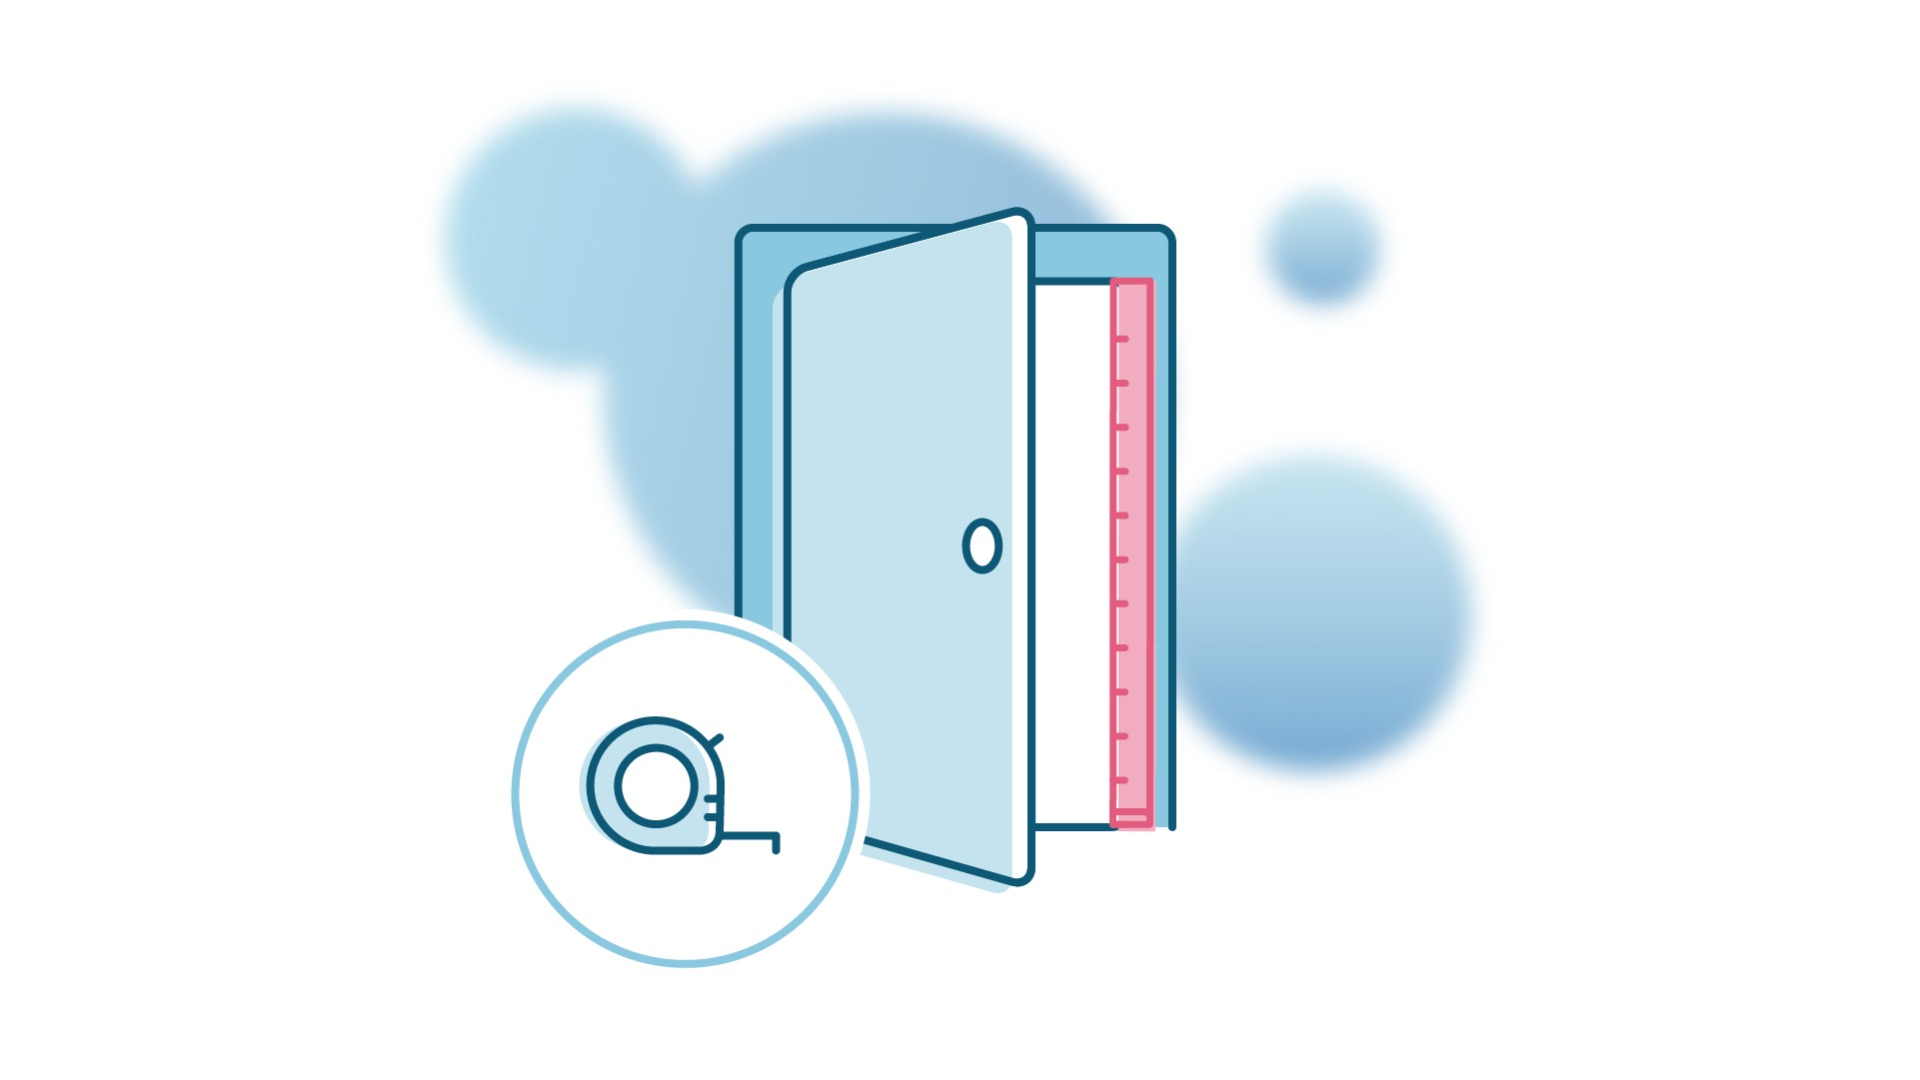 measuring your doorways, hallways and staircases